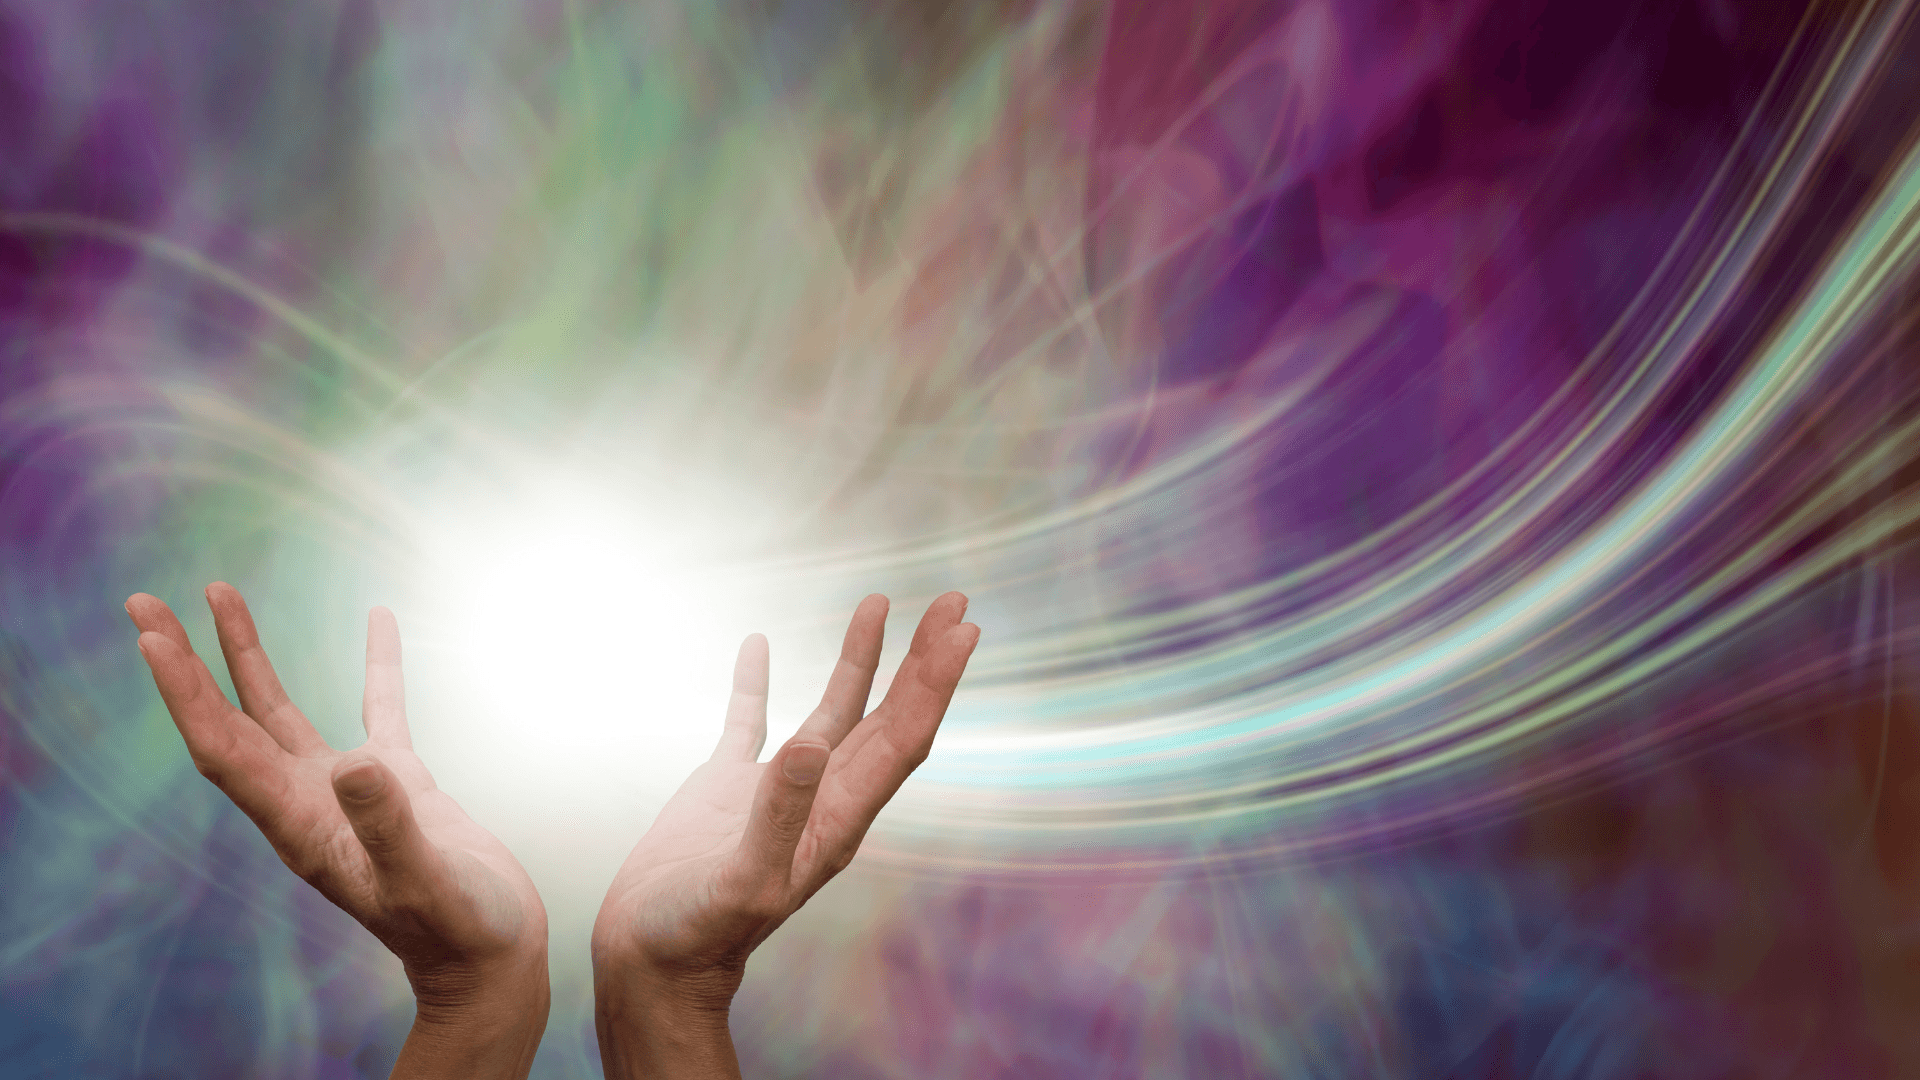 Energy from hands.